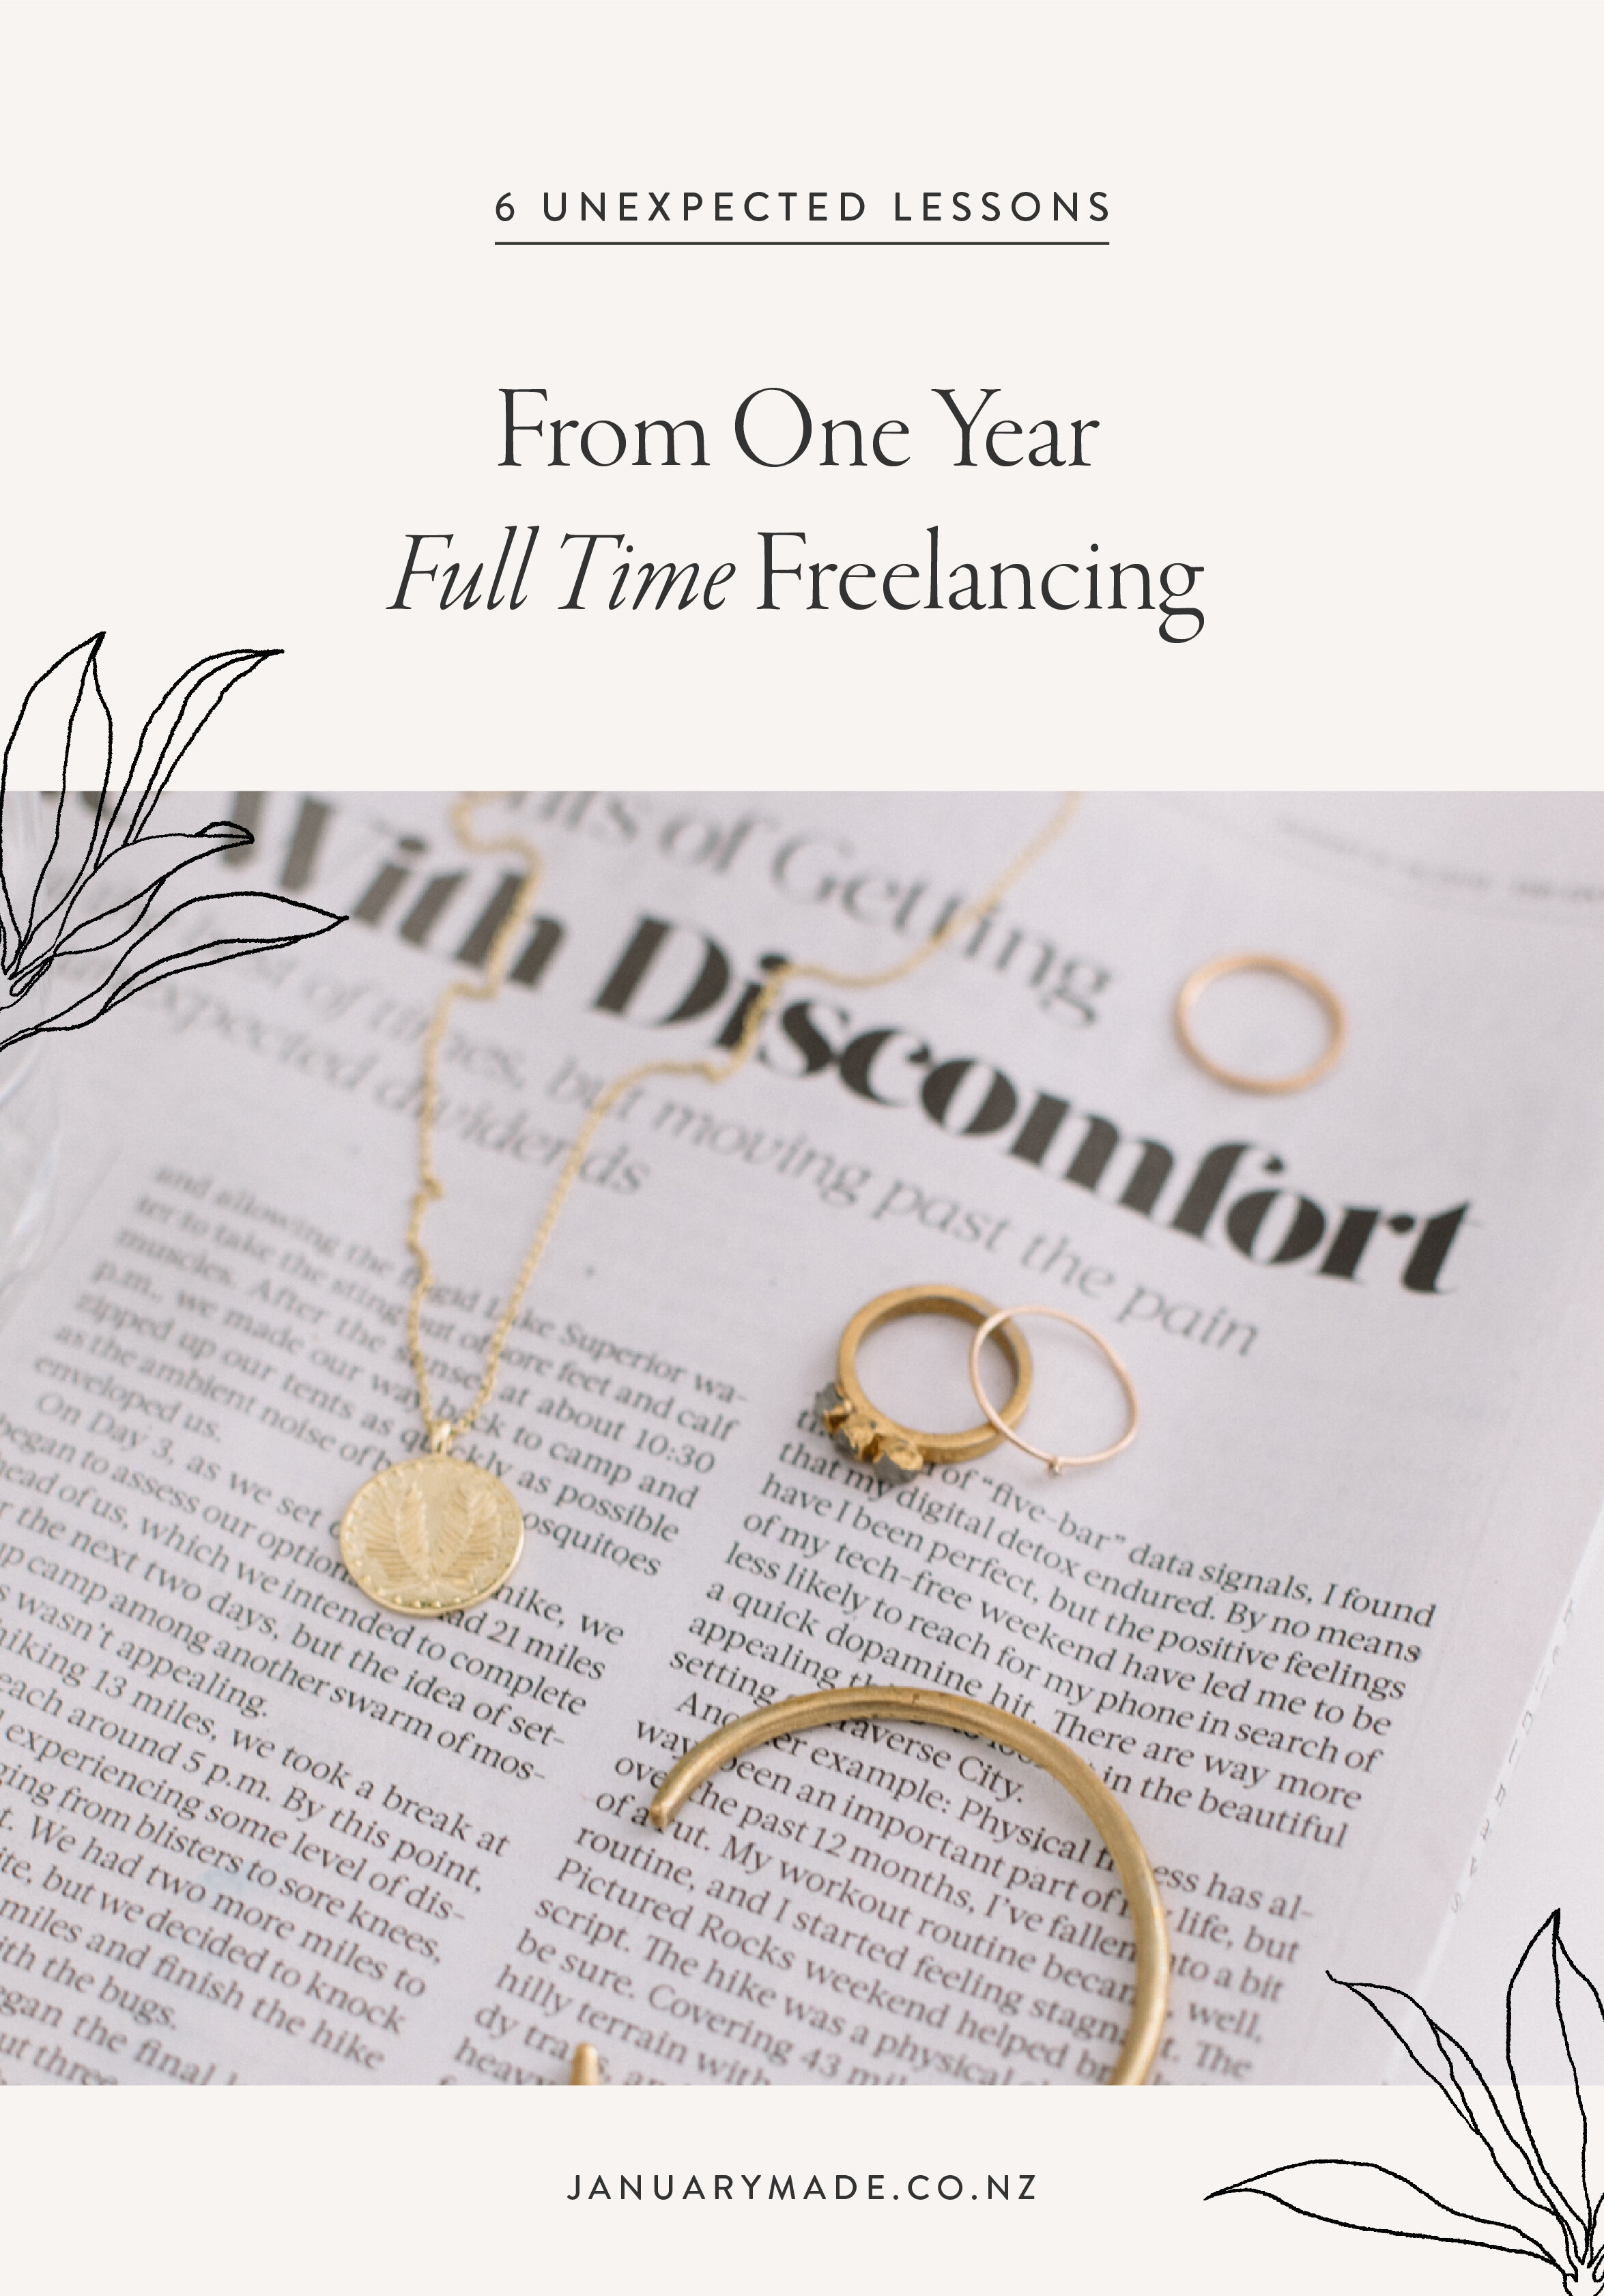 10 Unexpected Lessons From One Year Full Time Freelancing